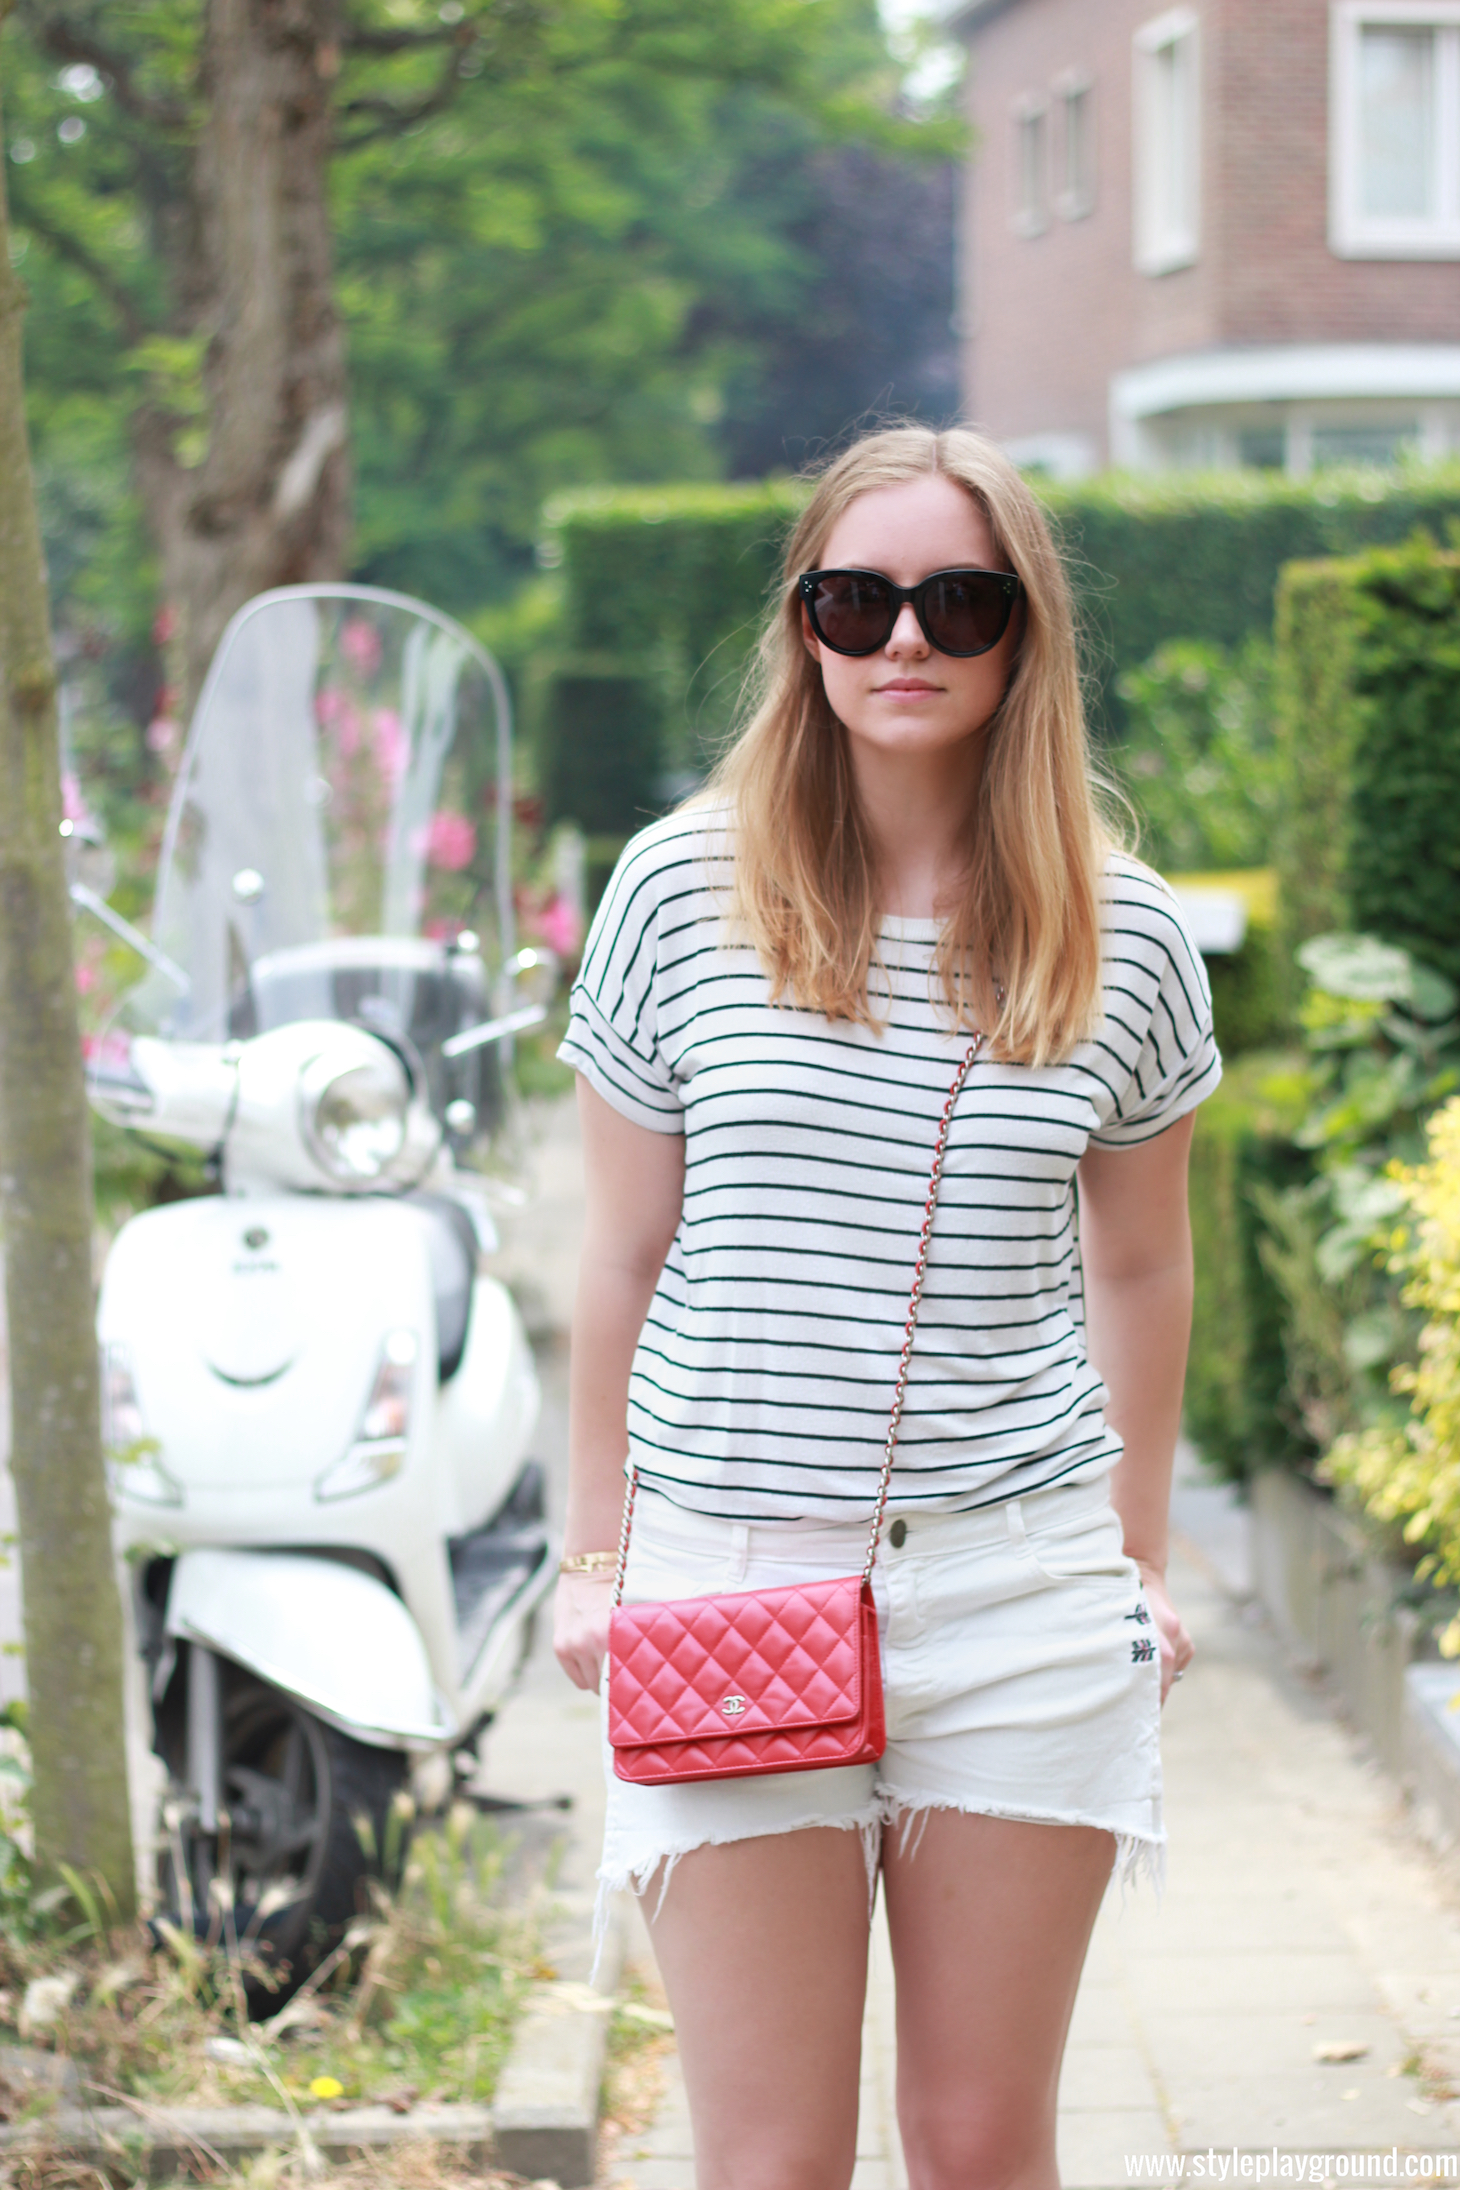 Axelle Blanpain from Style playground is wearing Zara shorts & t-shirt, white Converse sneakers, Chanel red WOC, Celine Audrey sunglasses